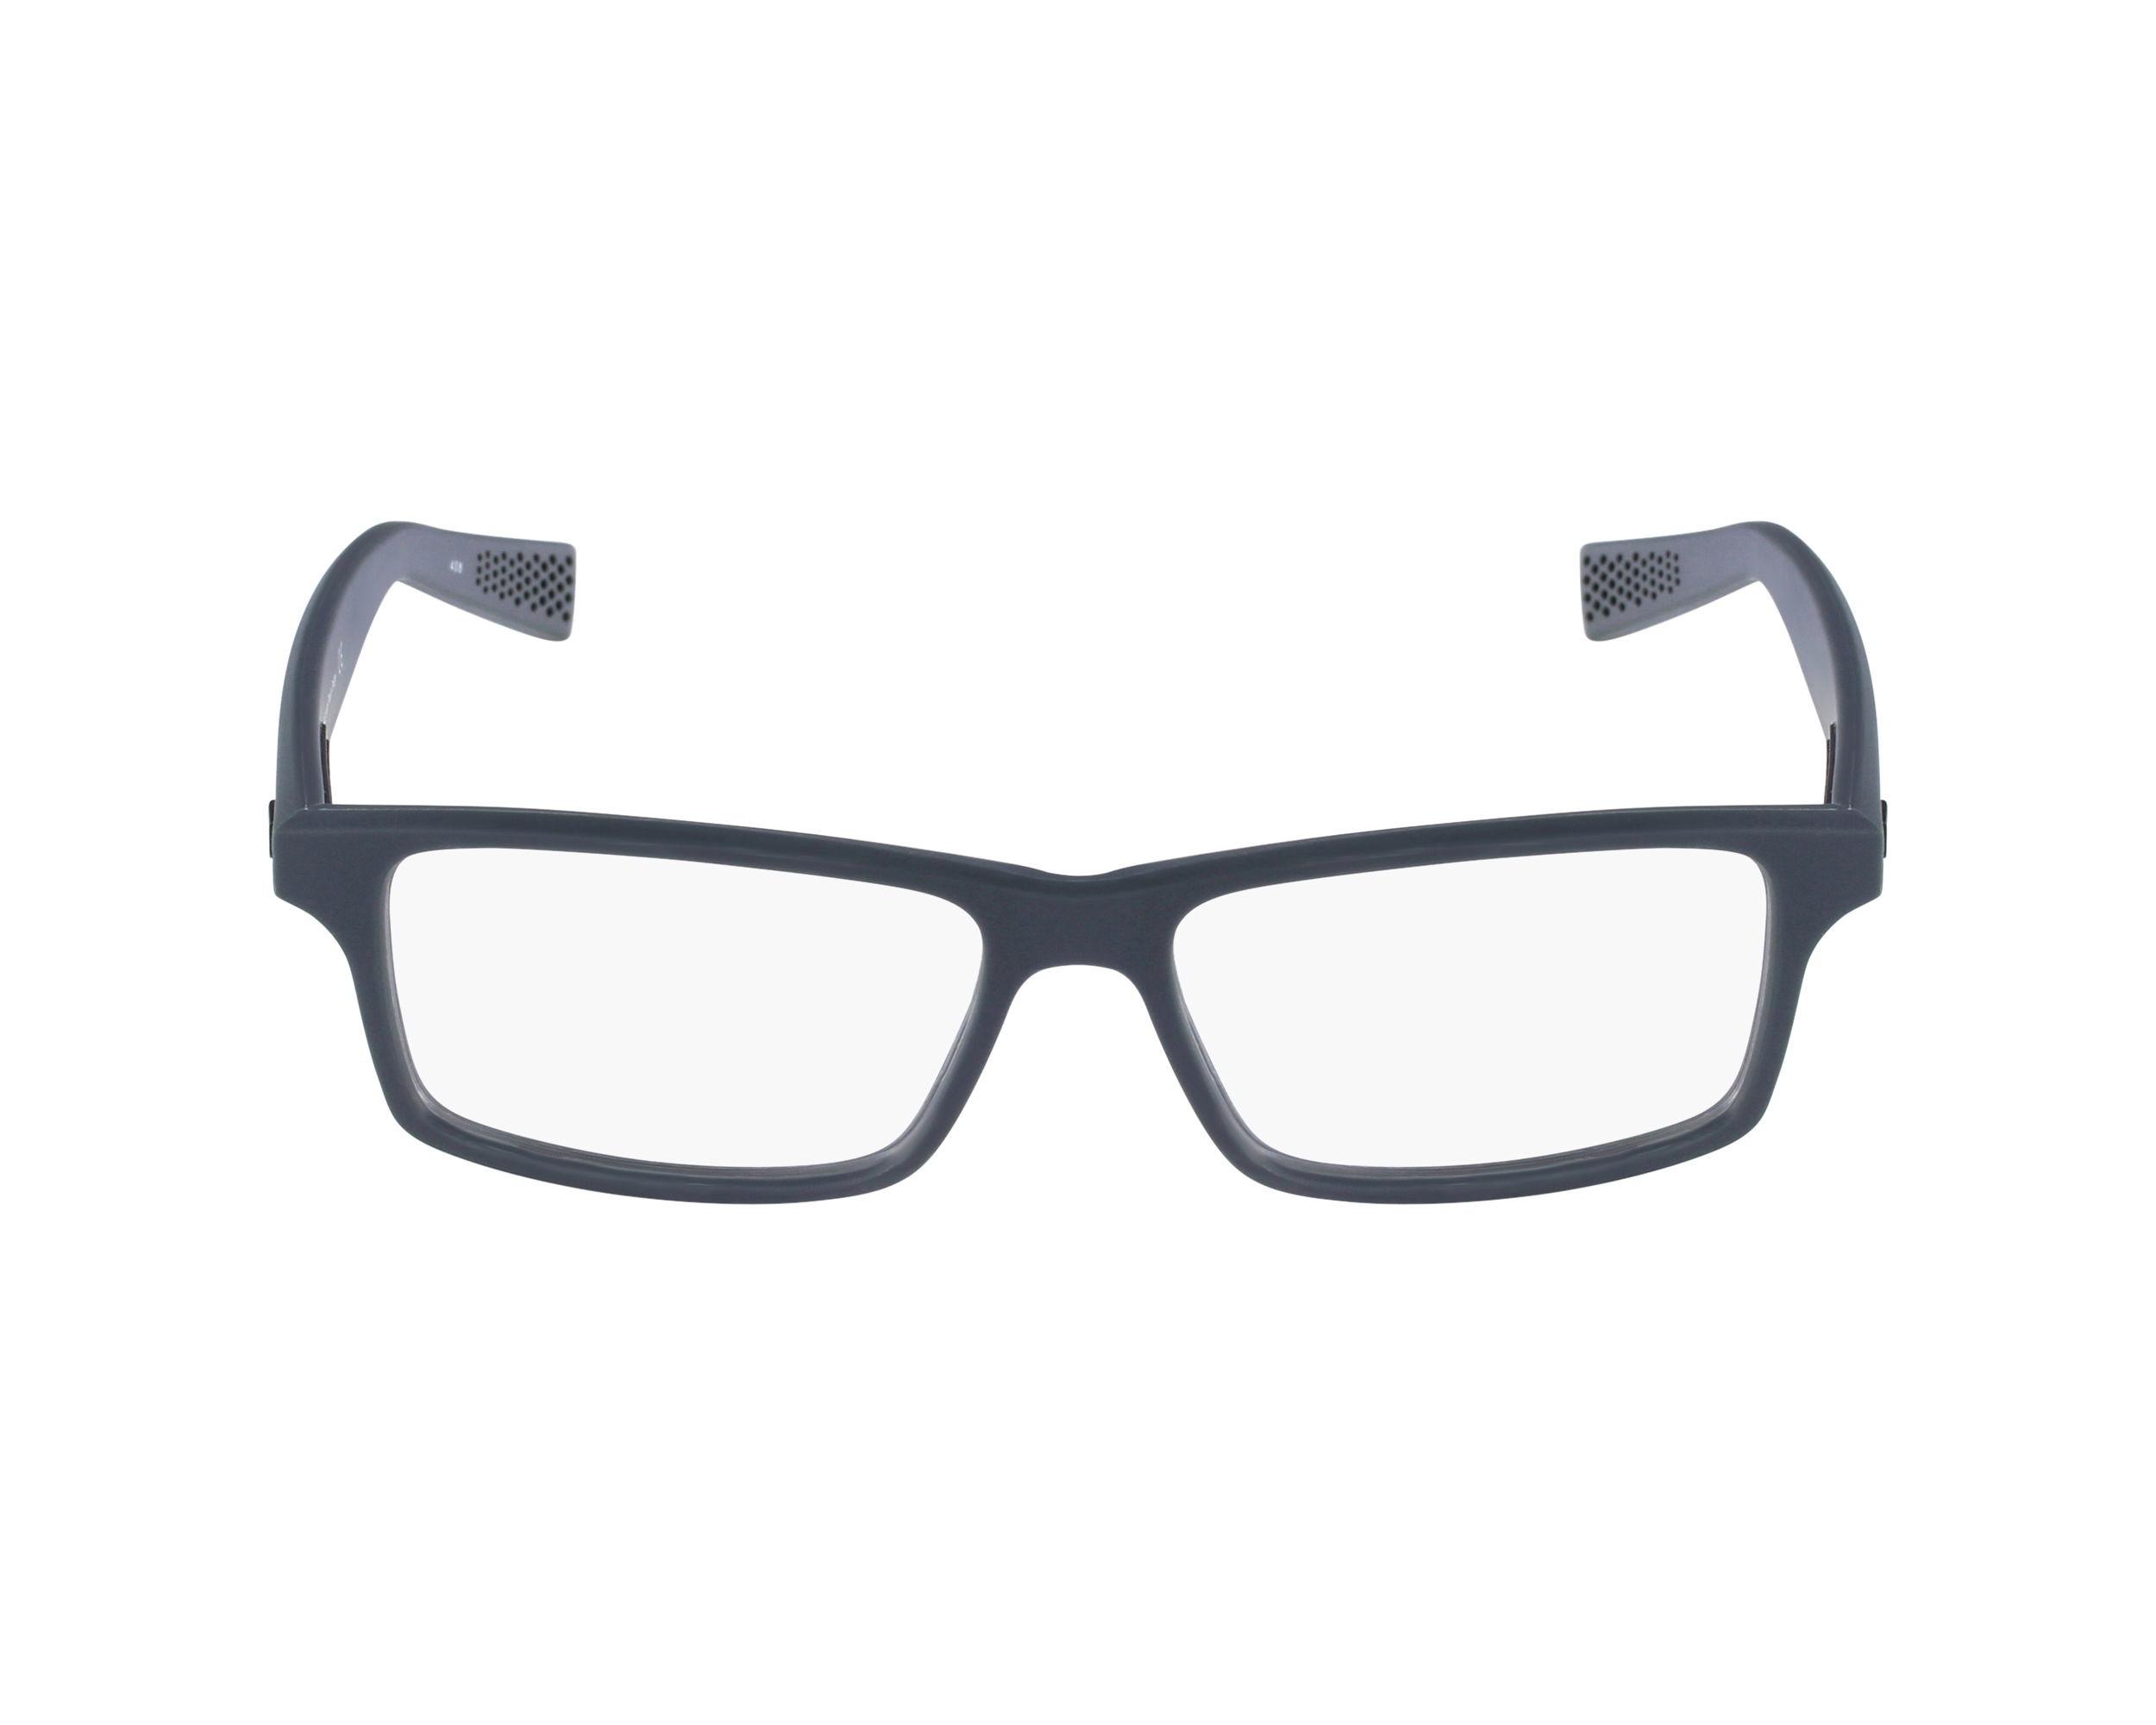 Nike Eyeglasses Grey 4259 024 - Visionet US